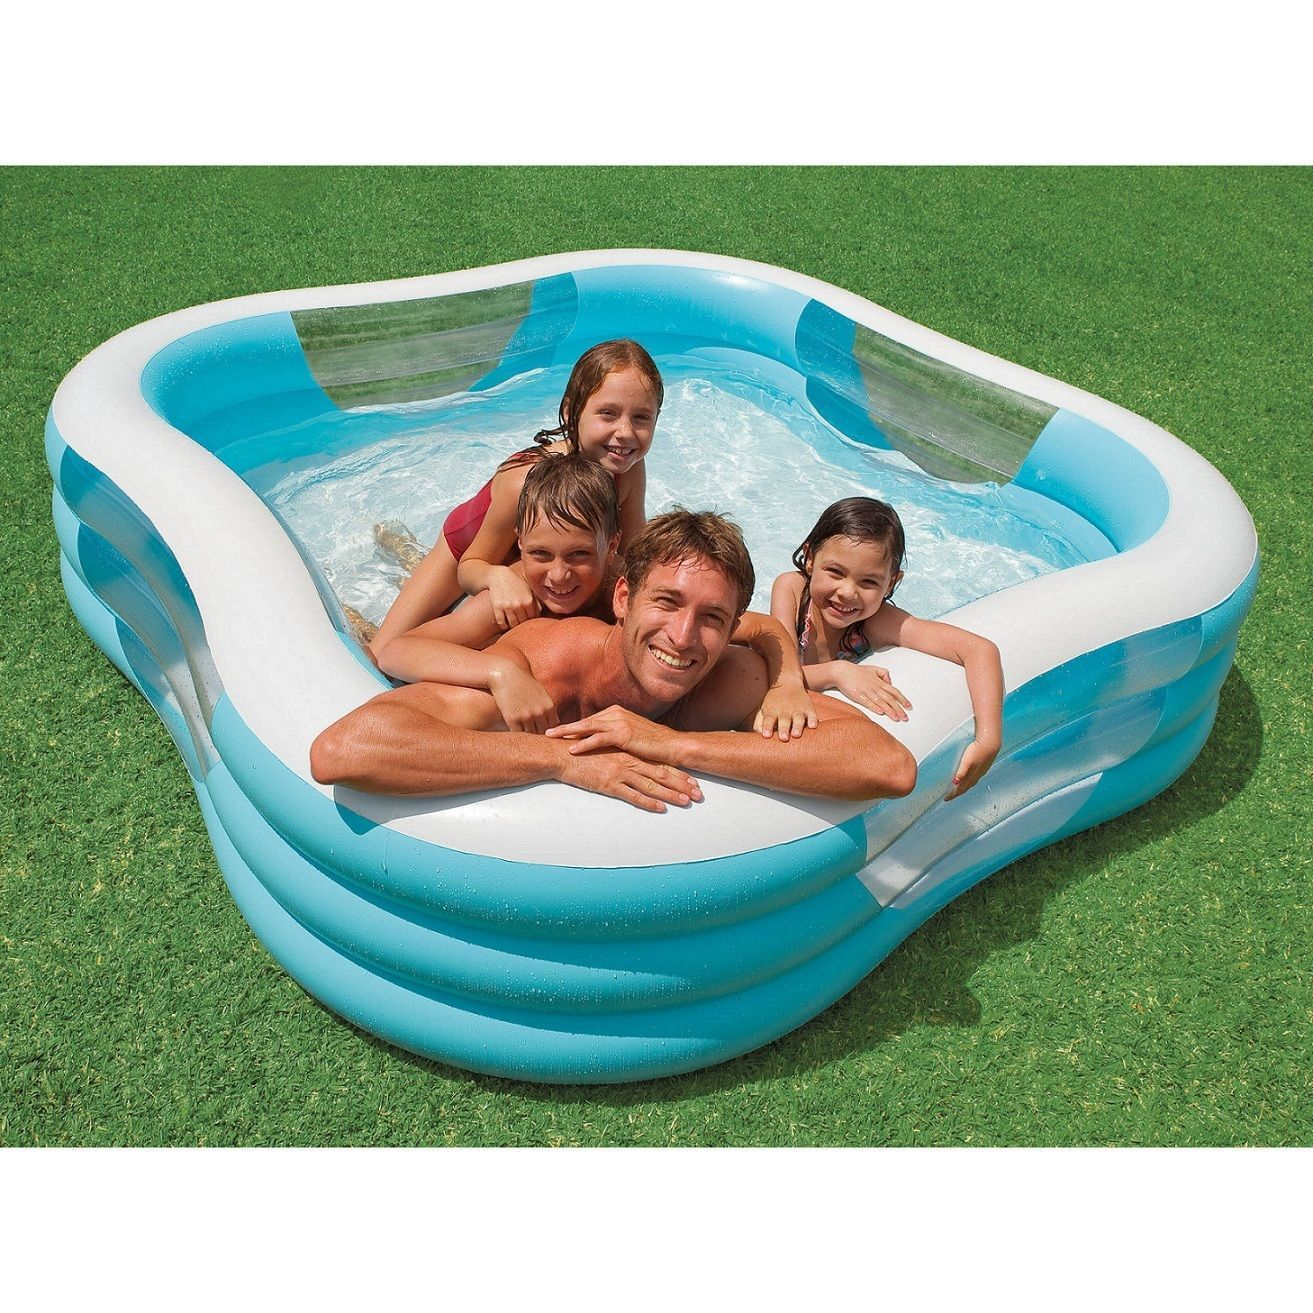 Intex inflatable pool family swimming backyard outdoor kid center above ground inflatable Intex inflatable swimming pool